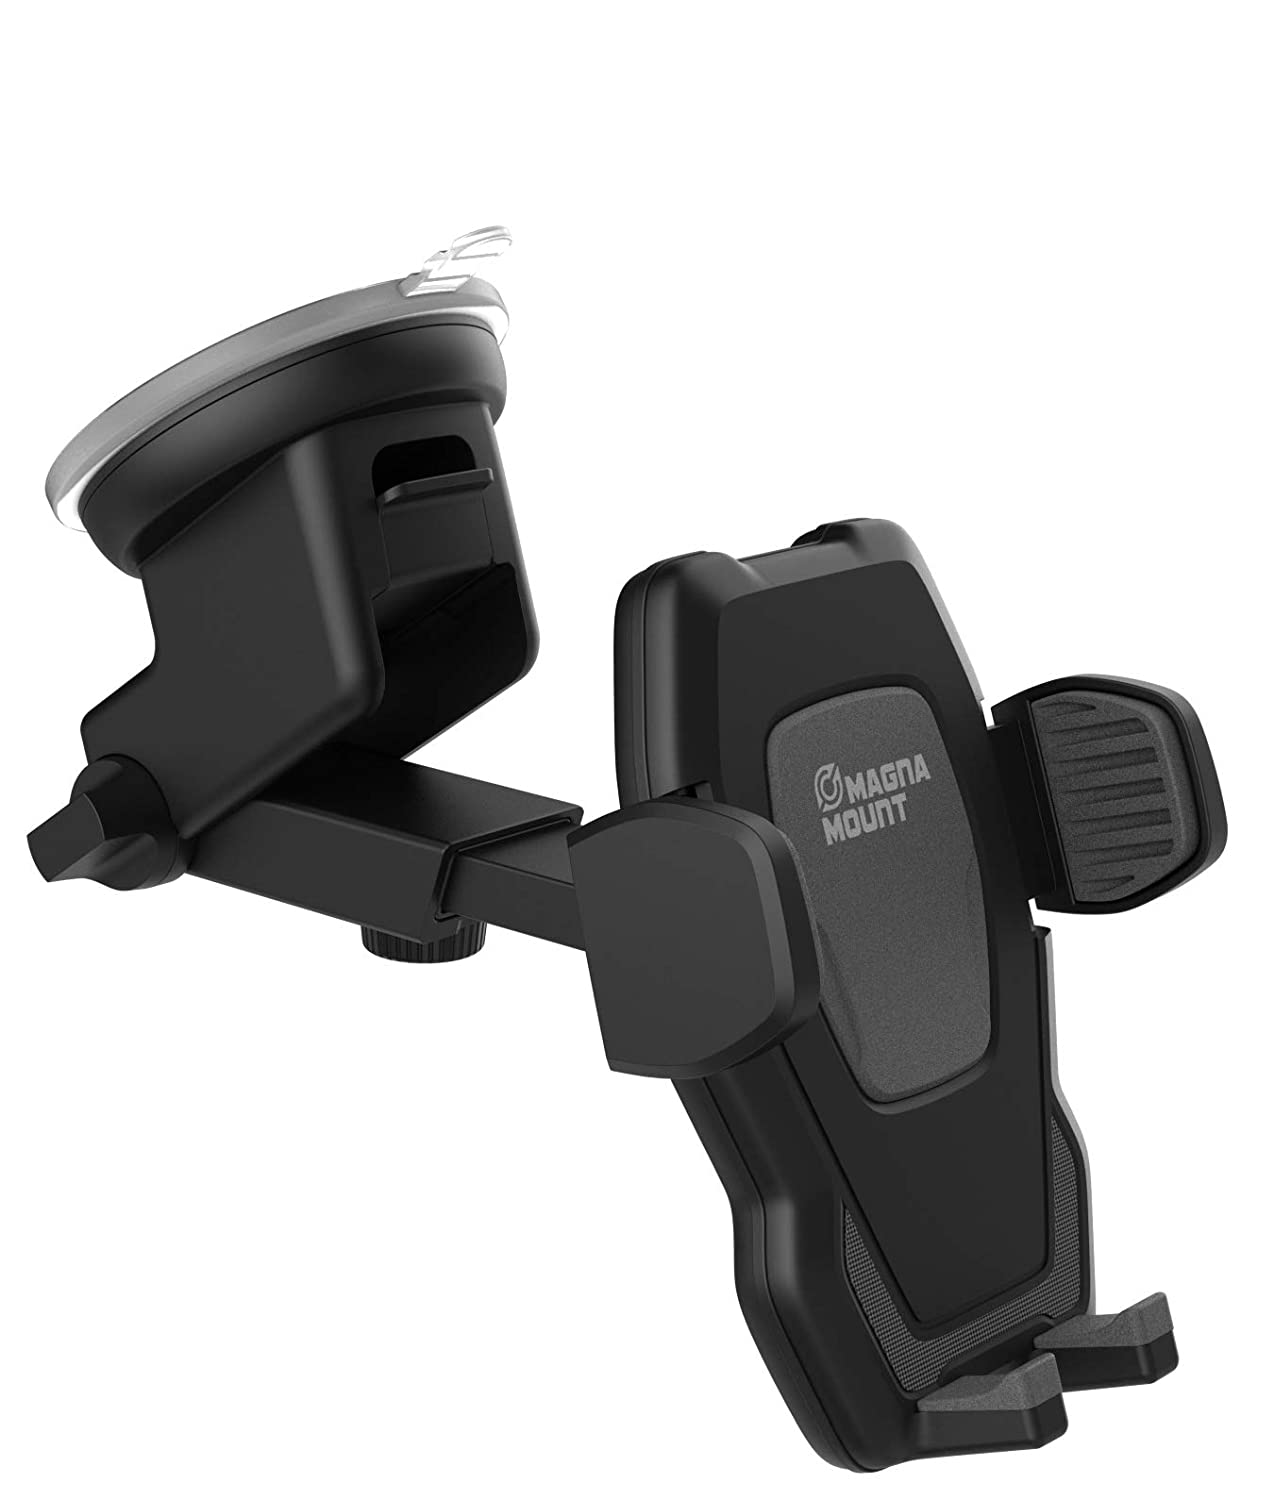 LG G7 ThinQ LG G8 ThinQ Phone Models Encased Car Mount for LG V40 Adjustable Dash//Vent//Windshield Holder with Rubber Grips